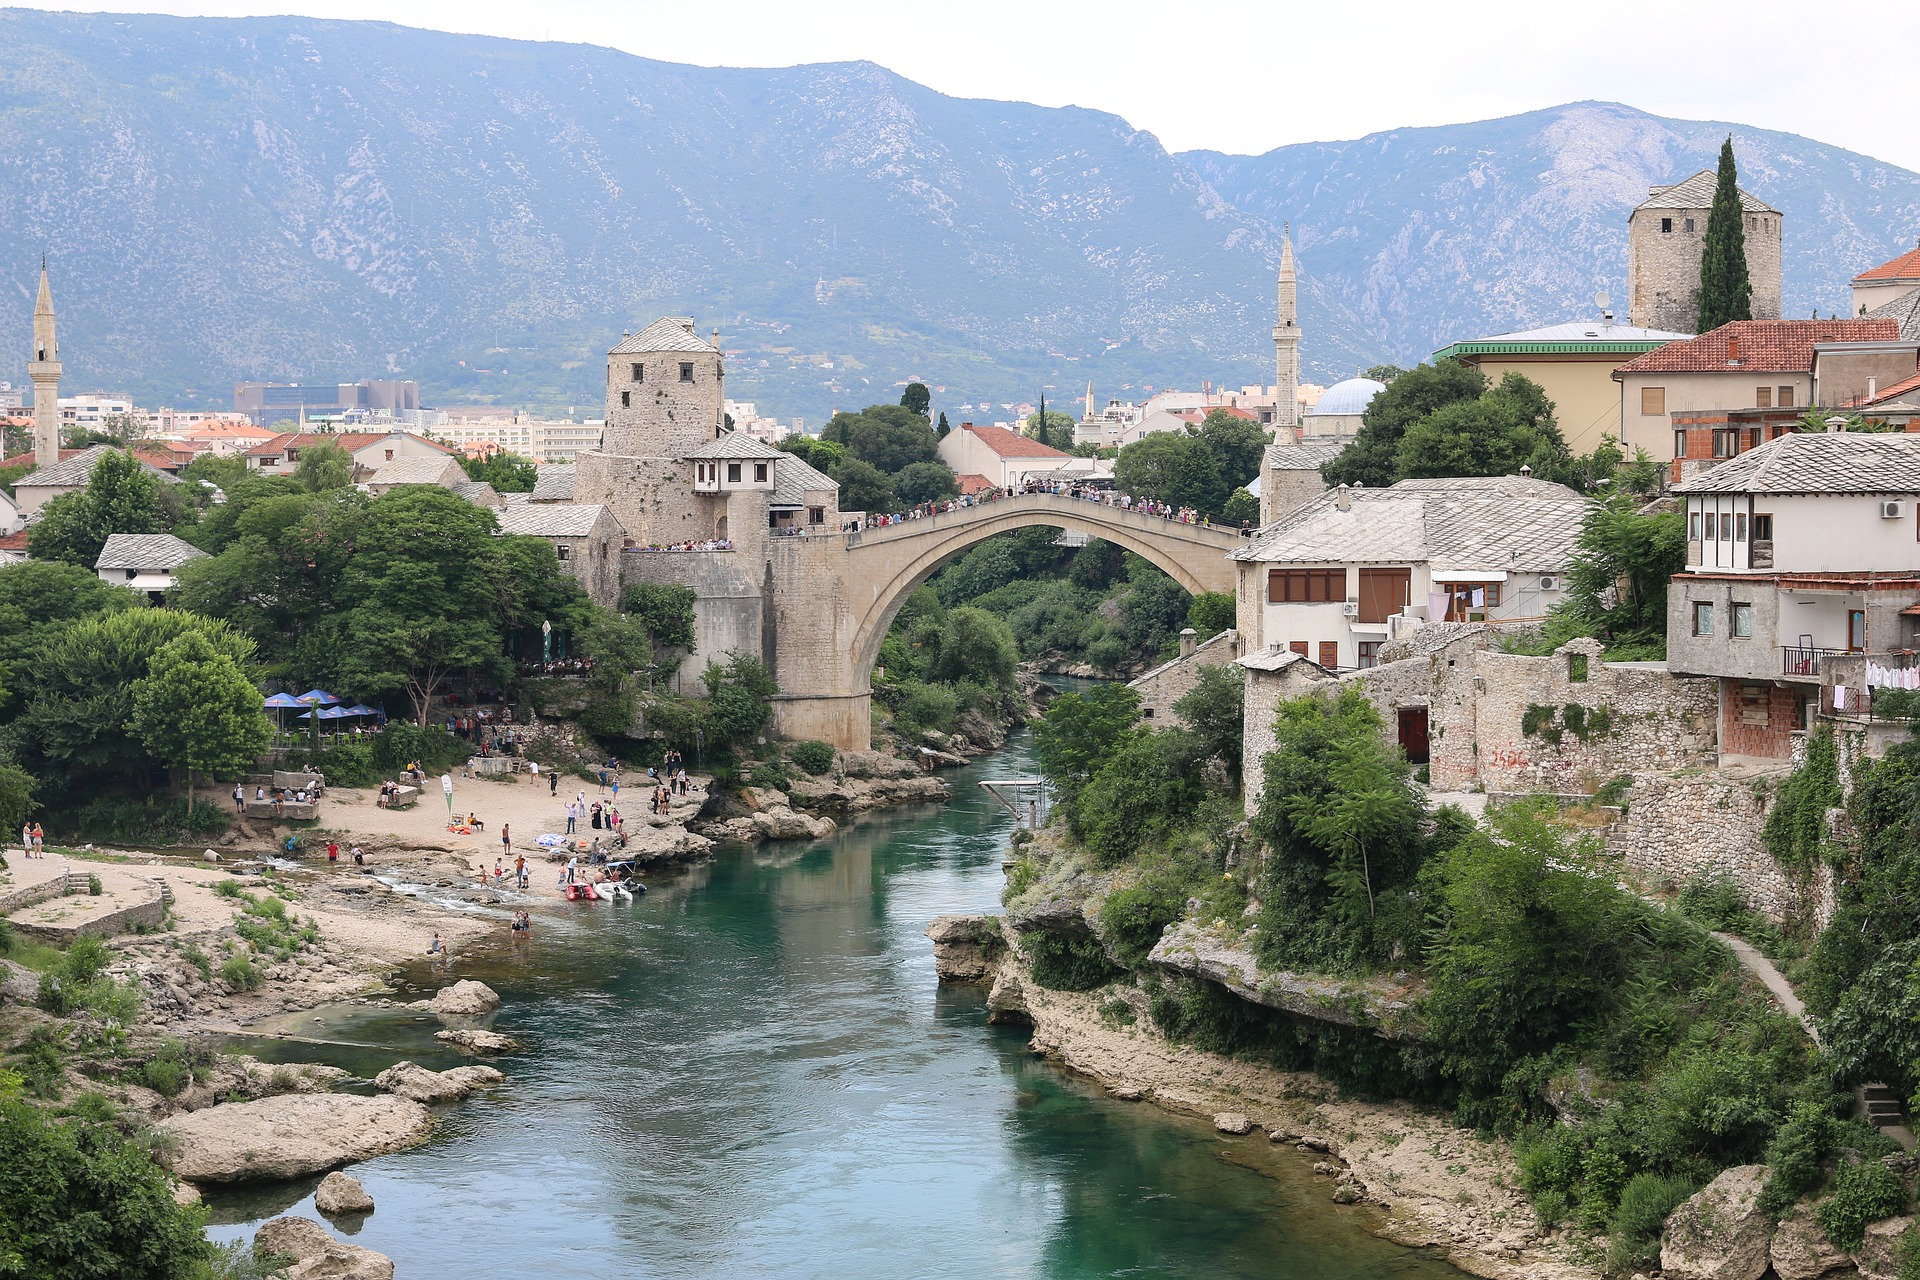 Mostar Bridge, is a rebuilt 16th-century Ottoman bridge in the historic city center of Mostar in Bosnia and Herzegovina that crosses the river Neretva and connects the two parts of the city.